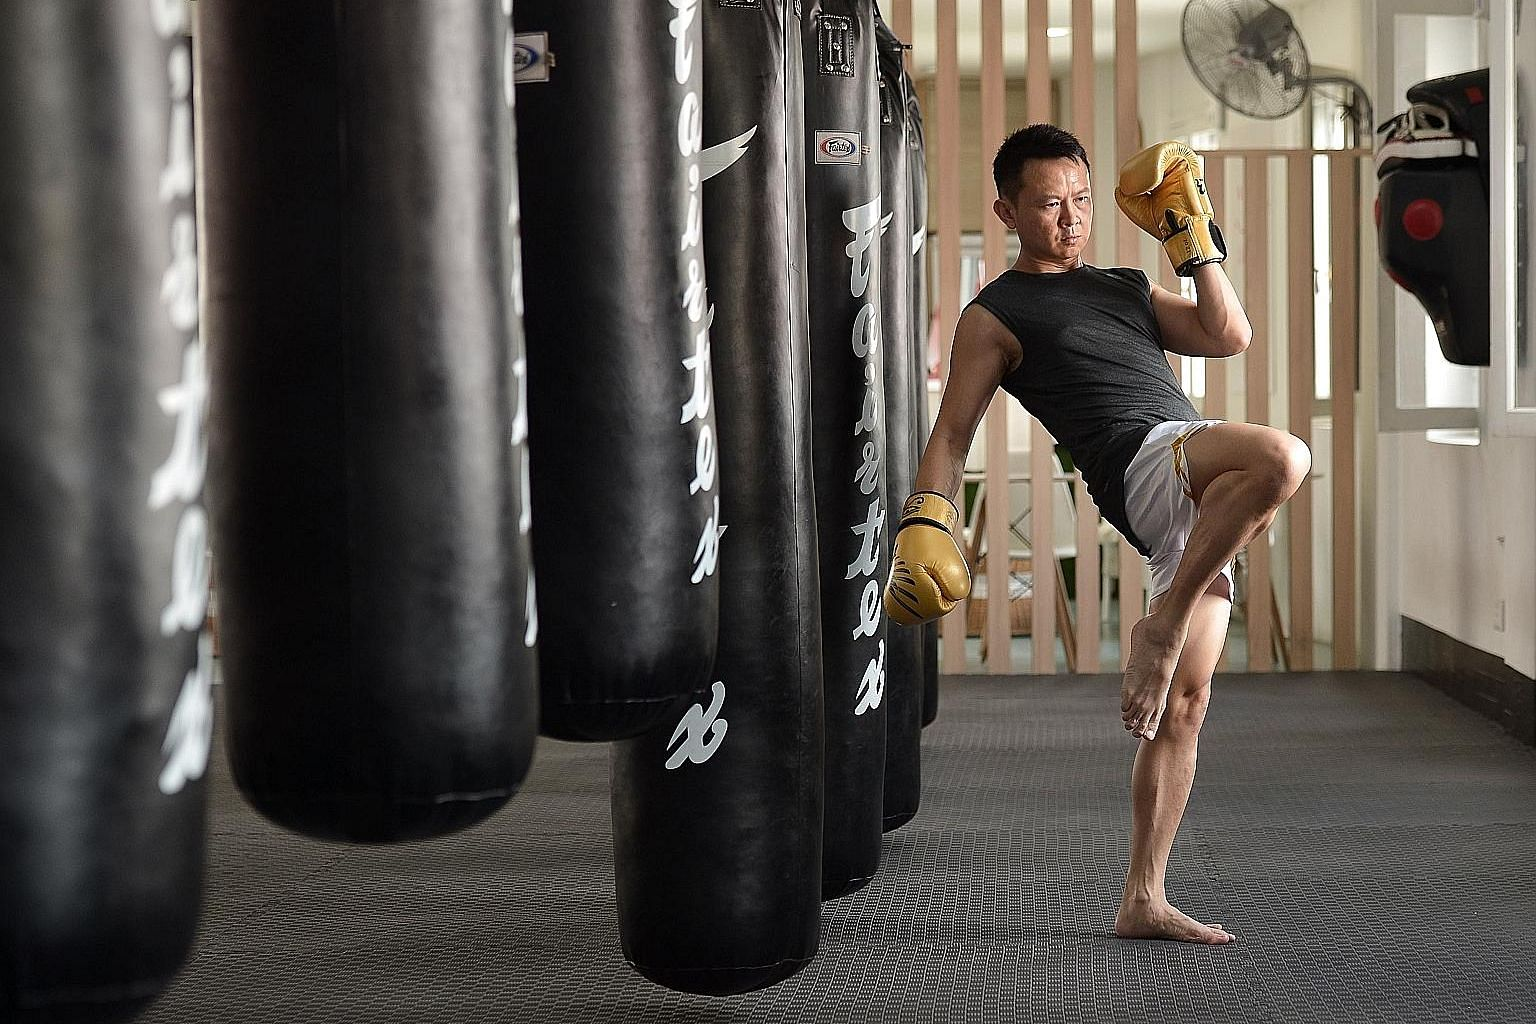 A fan of combat sports, Mr Davies Teo picked up muay thai two years ago and now trains thrice a week.